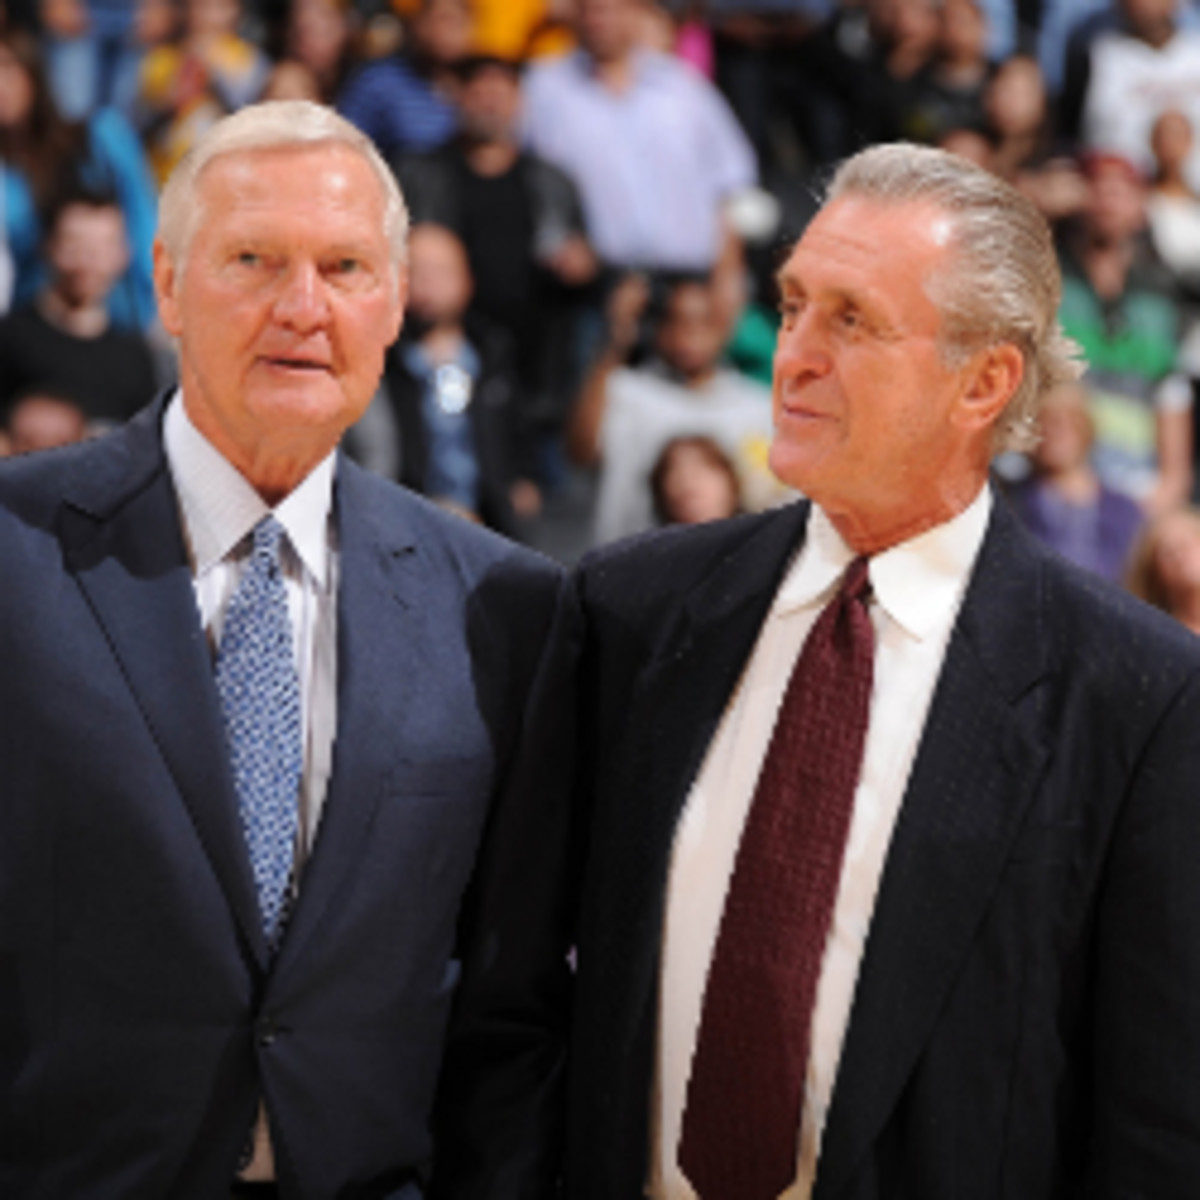 """Former Lakers star Jerry West said he thinks the Heat have an """"incredible chance"""" to break the Lakers' record of consecutive victories. (Andrew D. Bernstein/Getty Images)"""